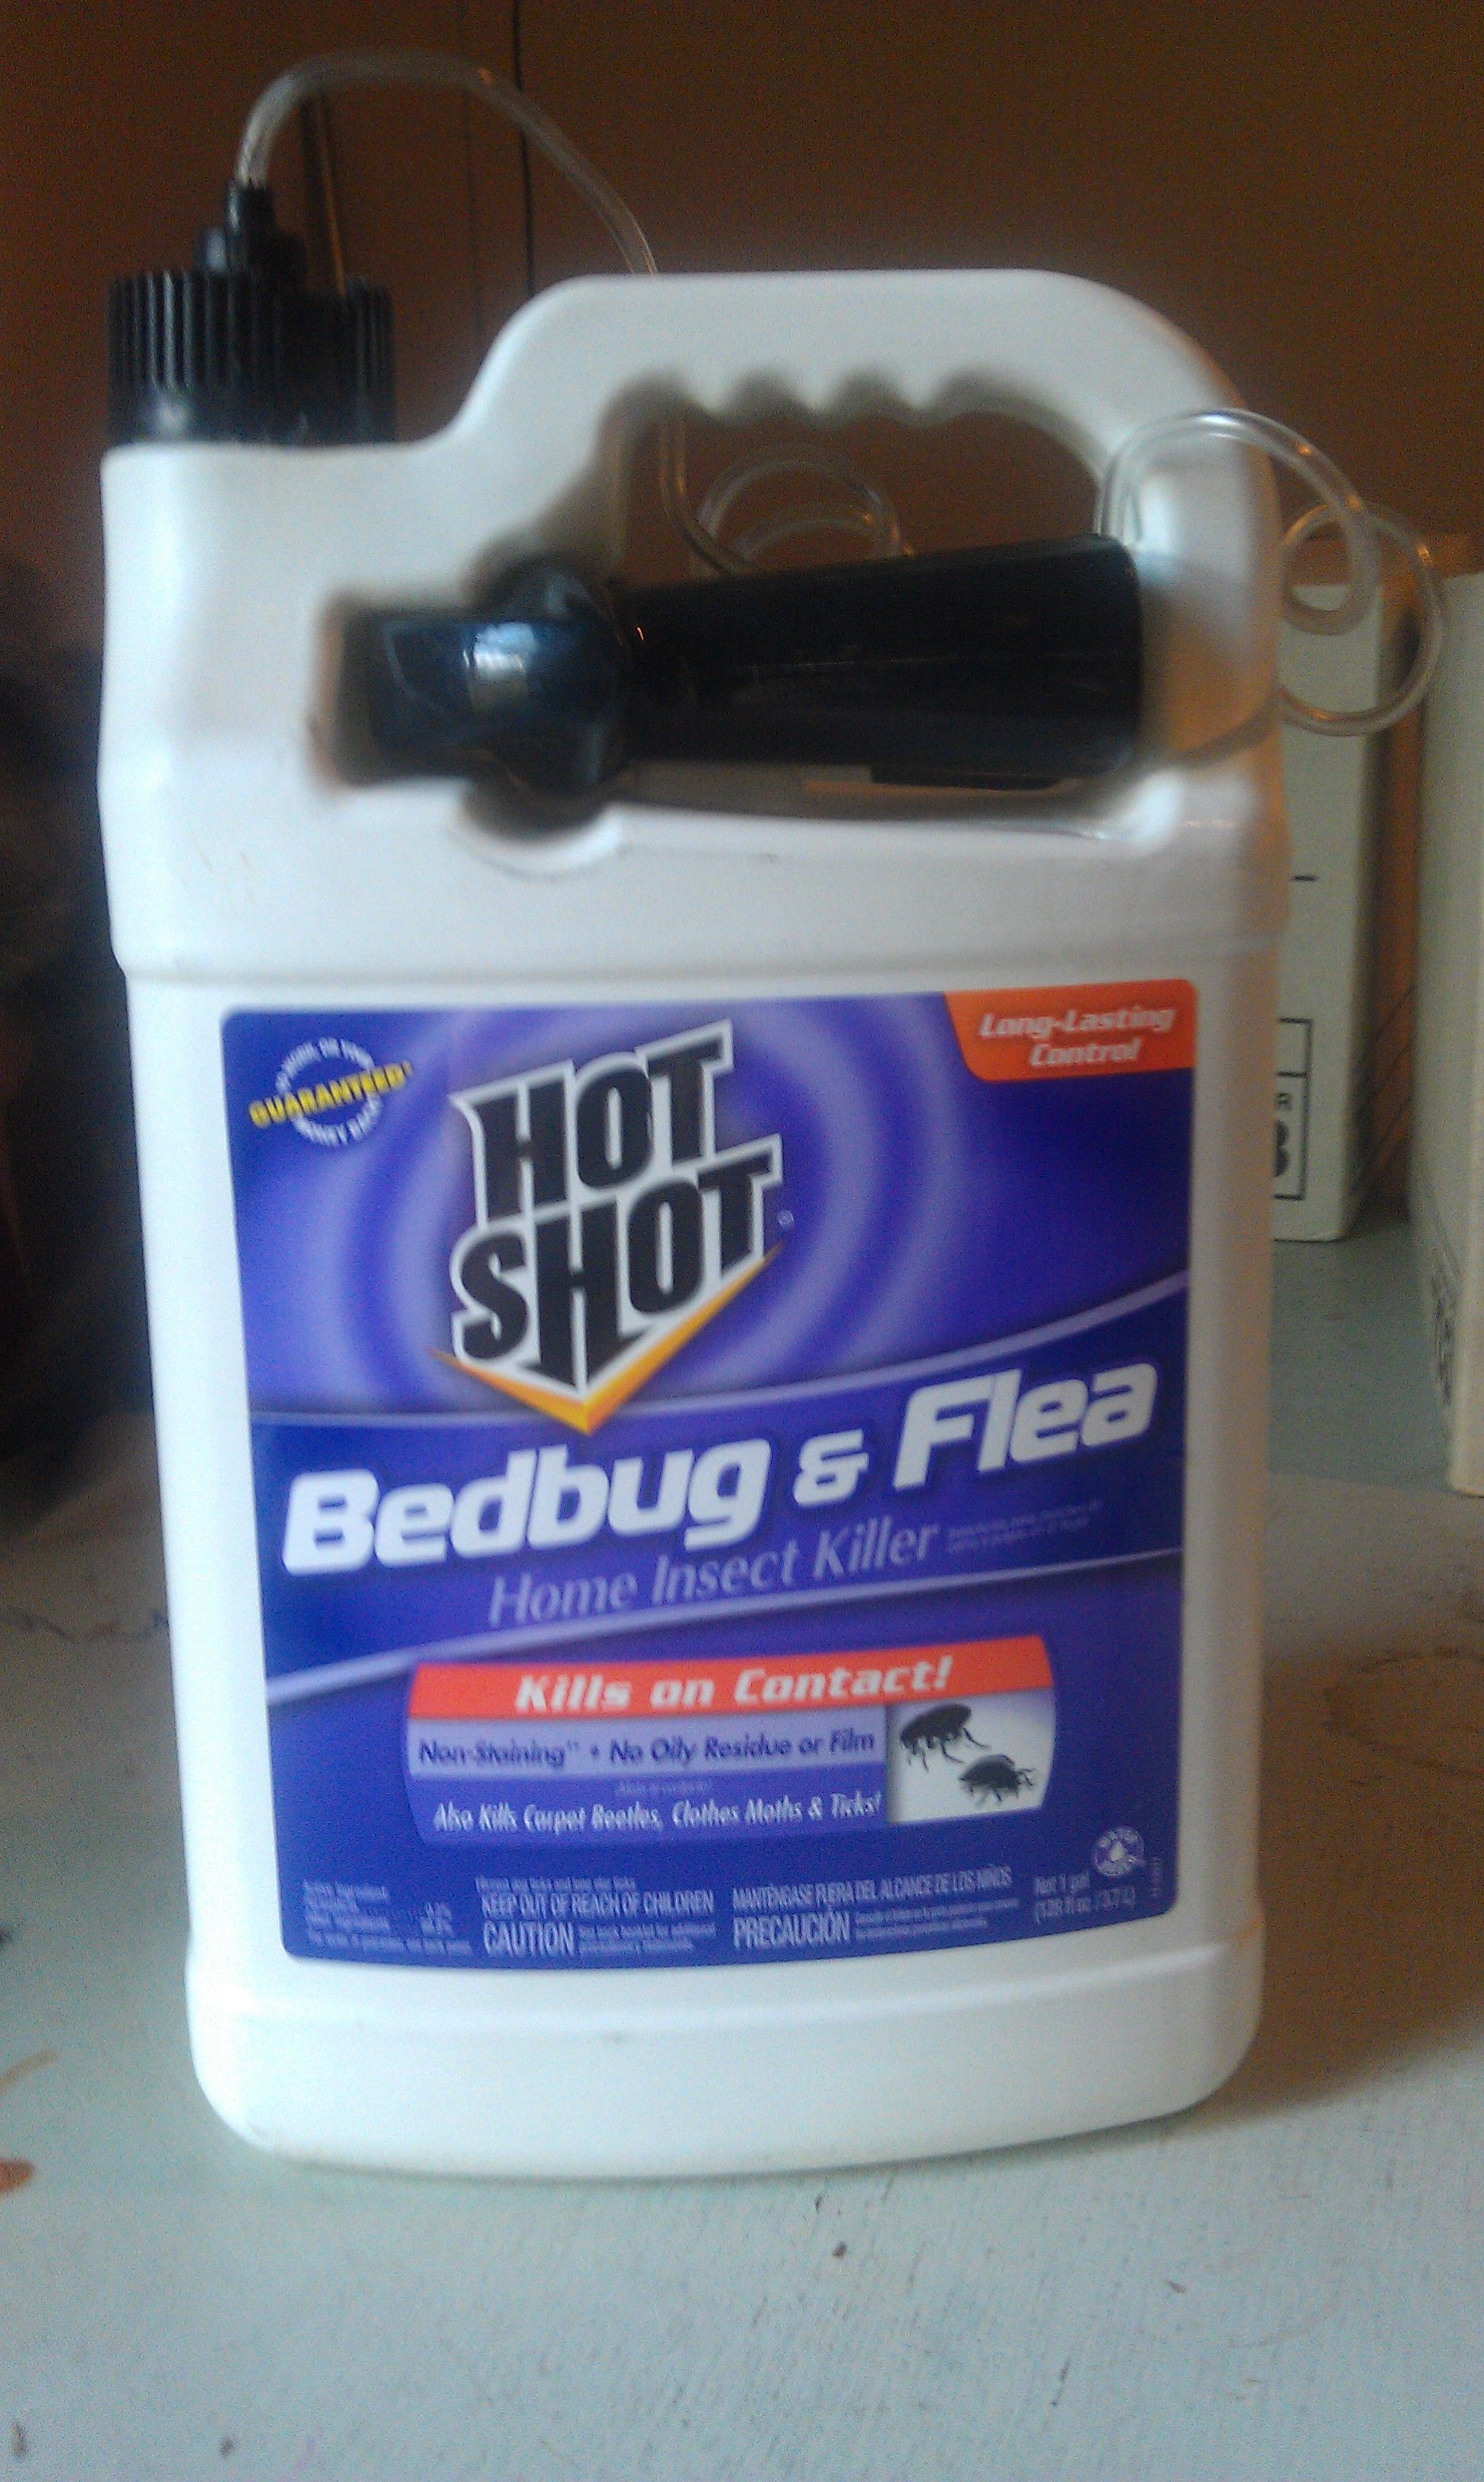 Hot Shot Bedbug and Flea Spray Review Bed bugs, Flea